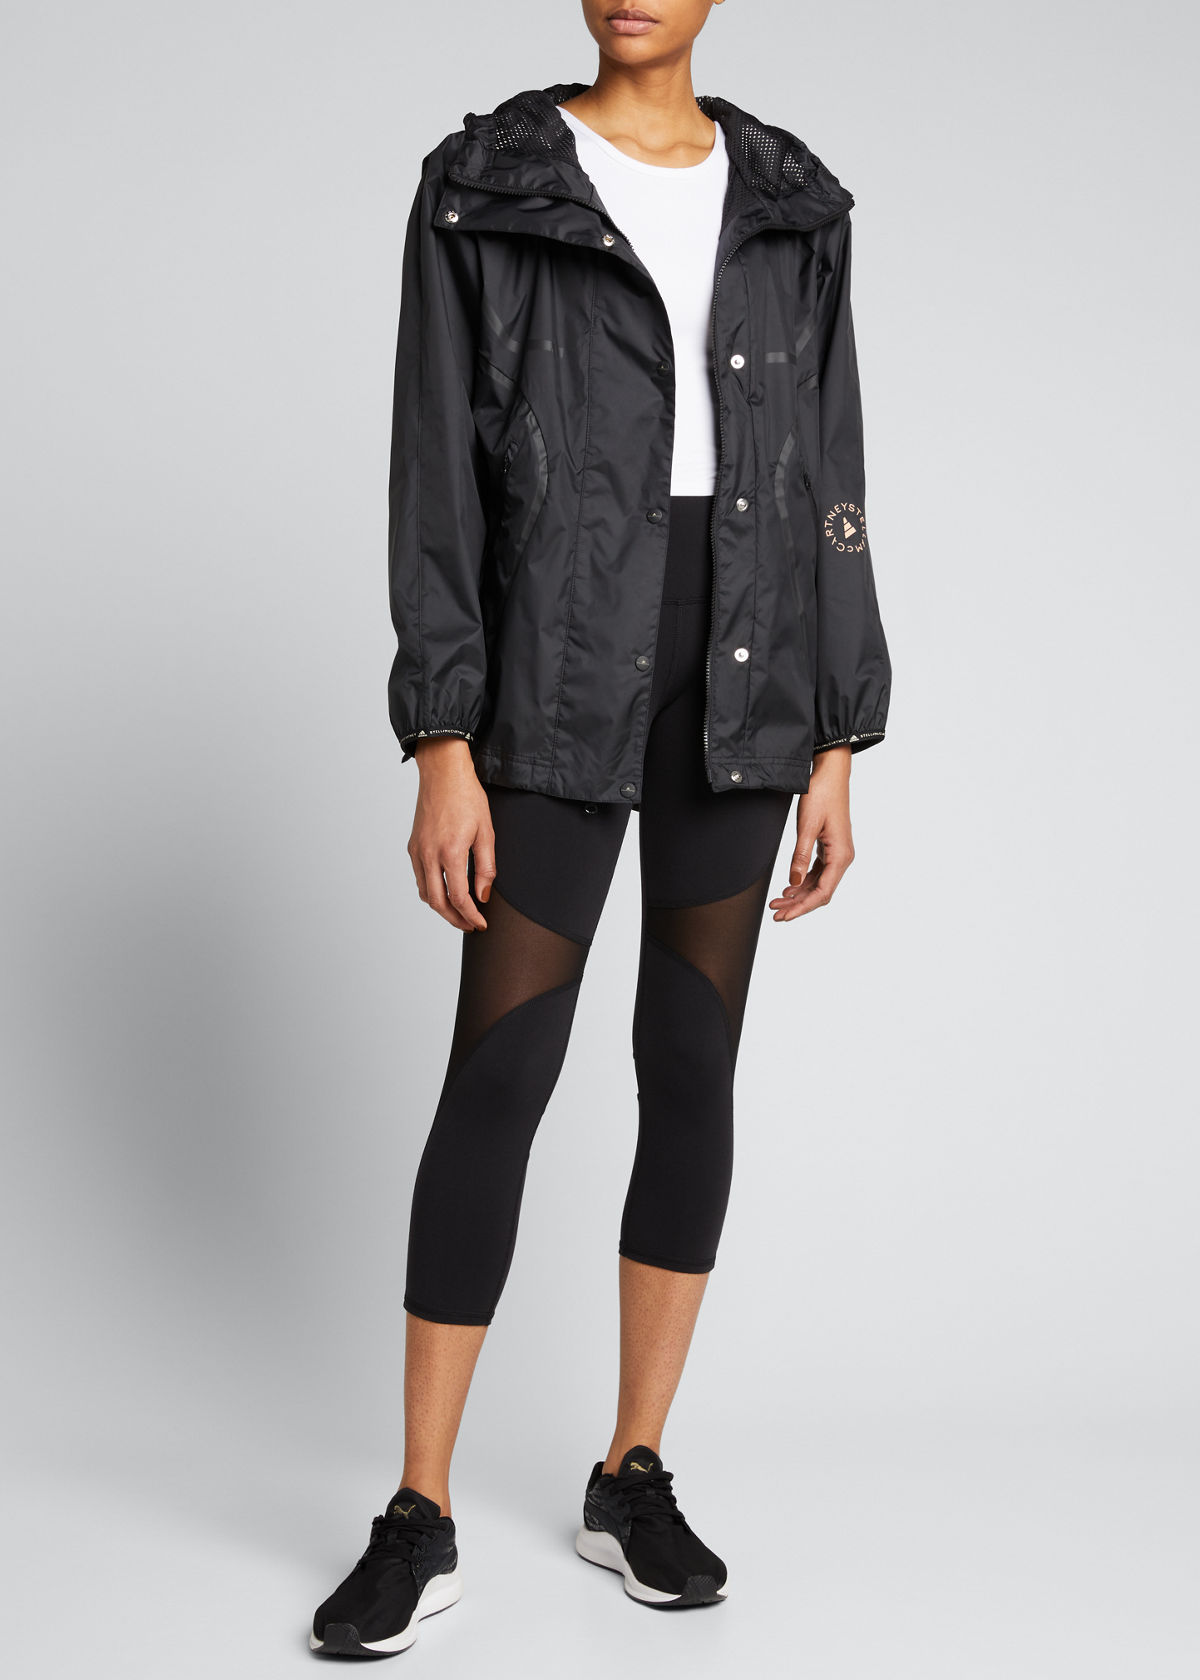 Adidas By Stella Mccartney TRUE PACE RUN JACKET